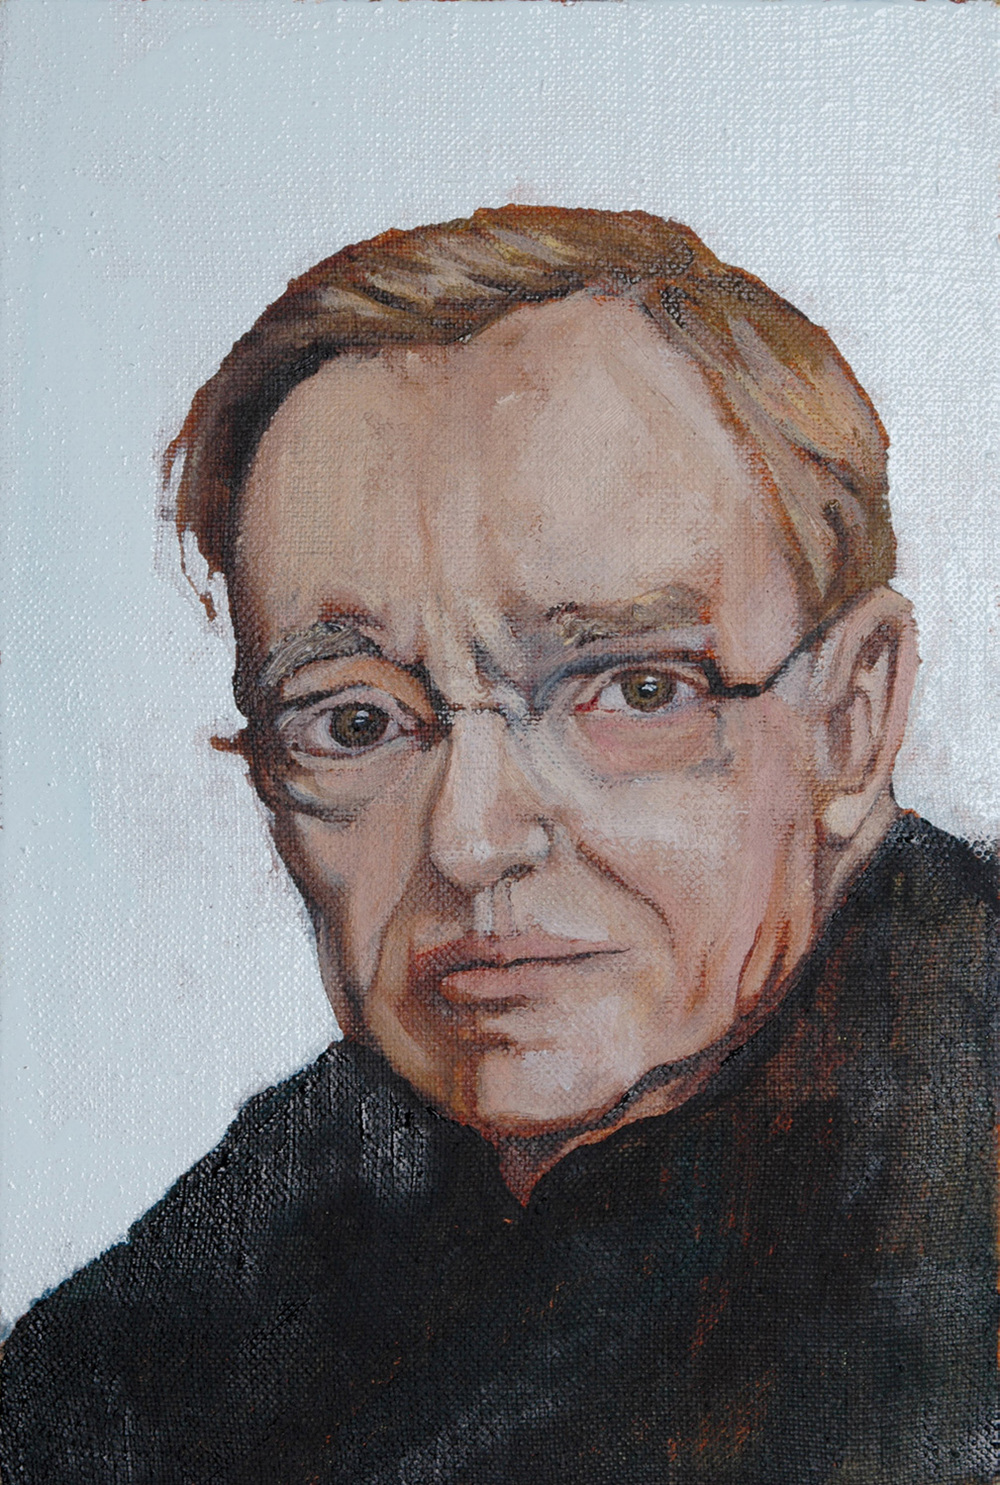 Portrait of David Grossman, Oil on canvas, 20X30 cm, 13.8.2006